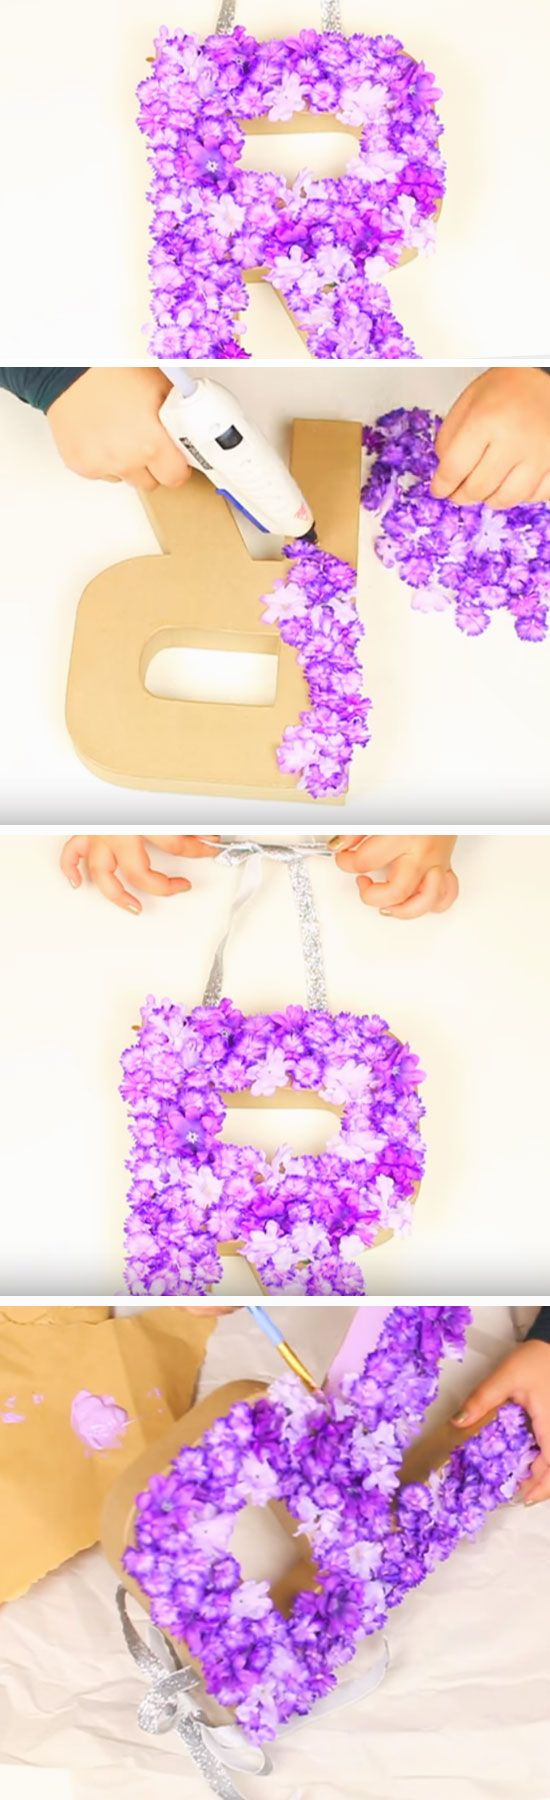 Pin on easy crafts